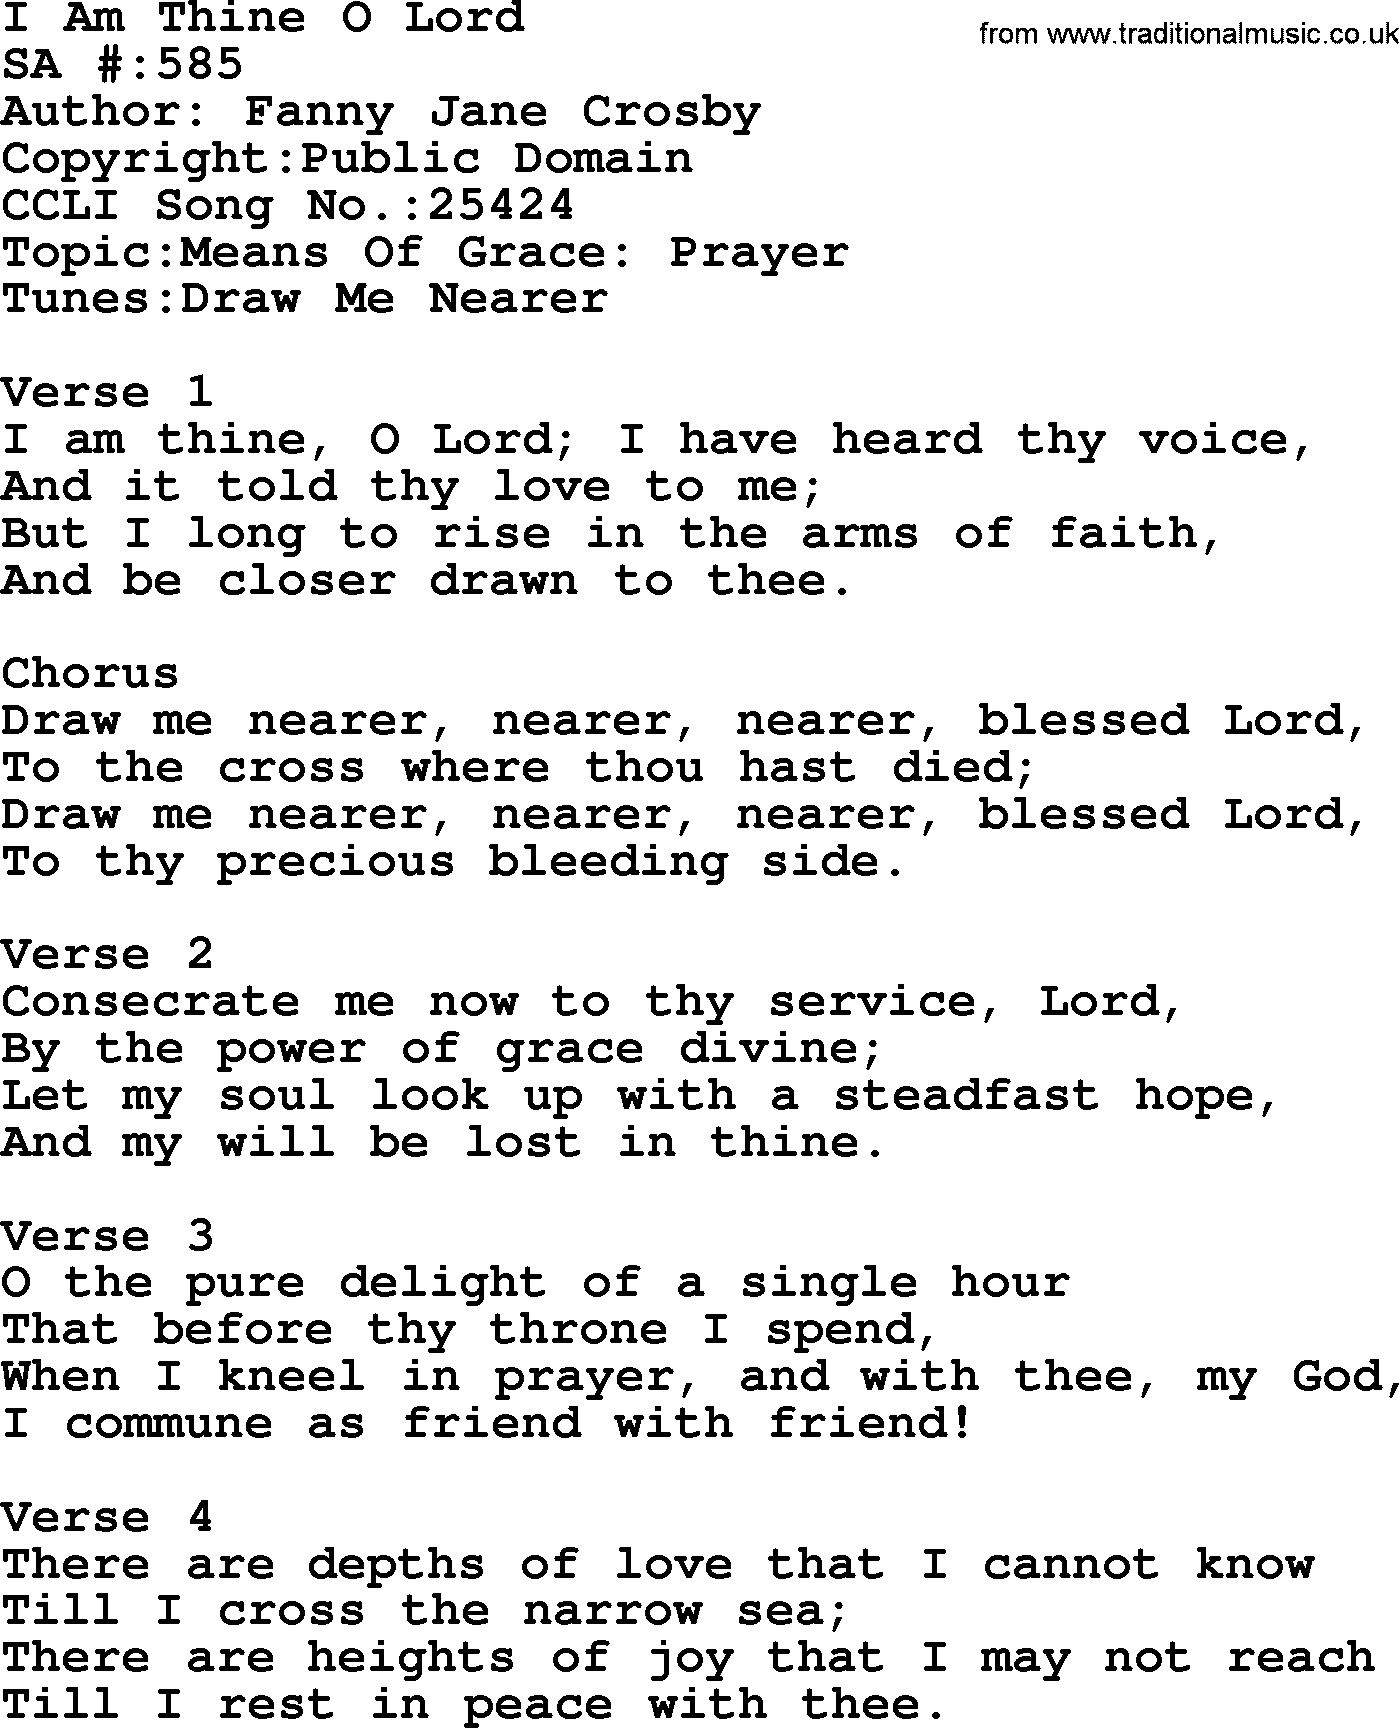 Salvation Army Hymnal Song: I Am Thine O Lord, with Lyrics and PDF